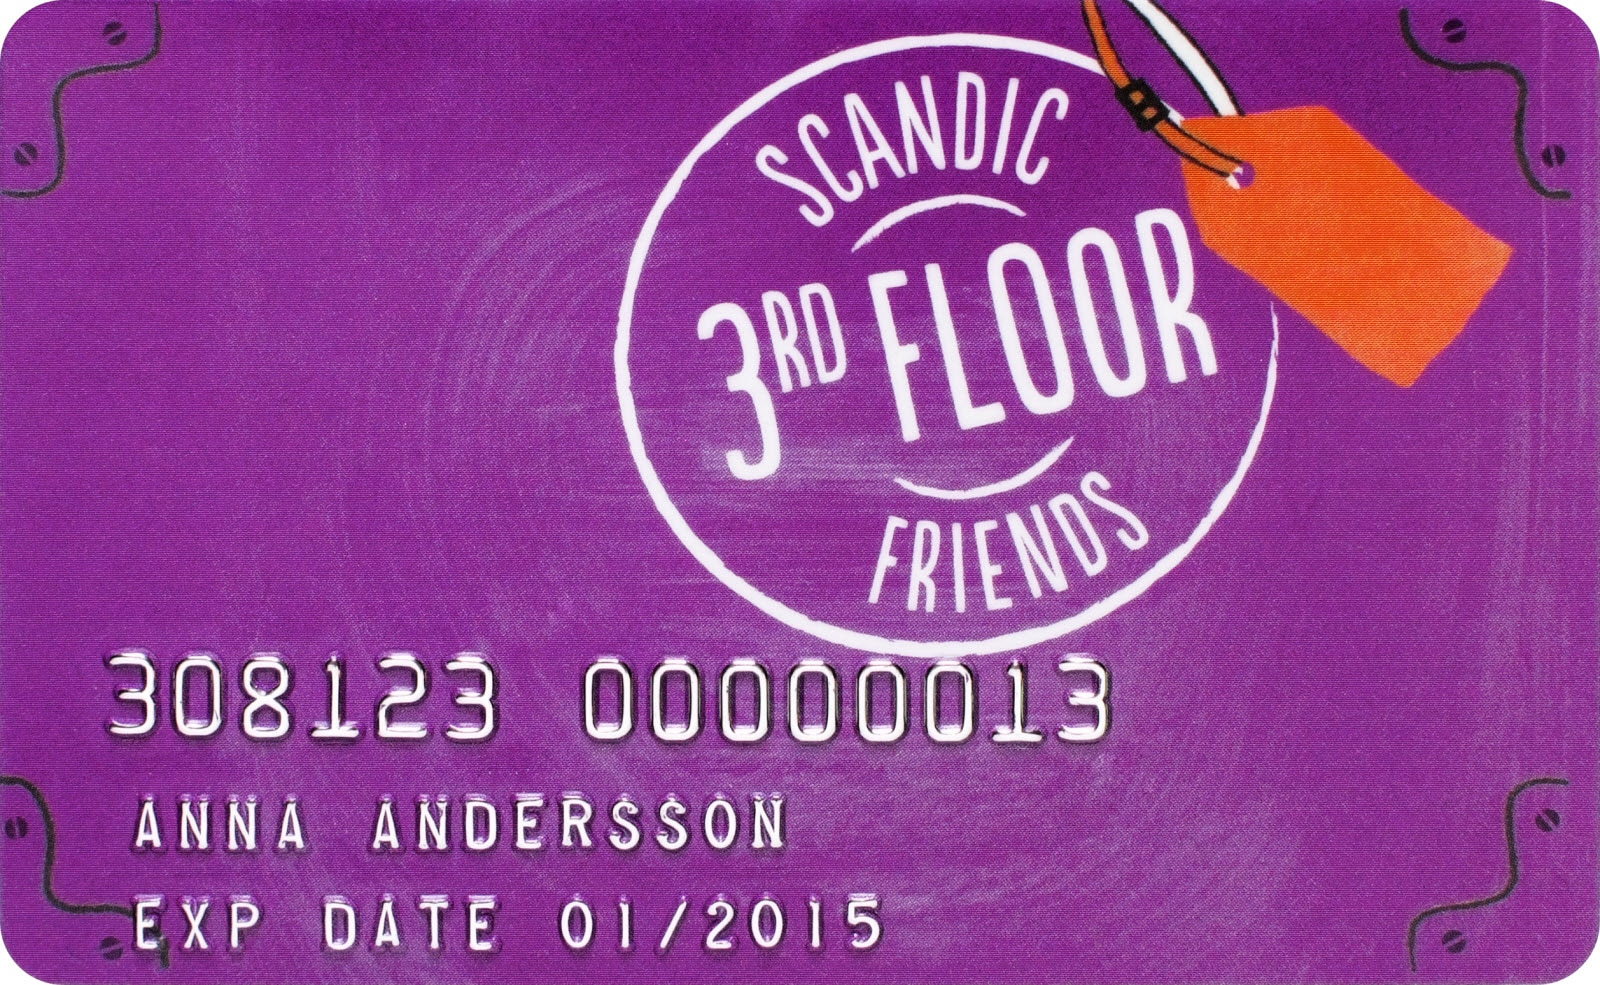 ScandicFriends_3rdFloor.jpg